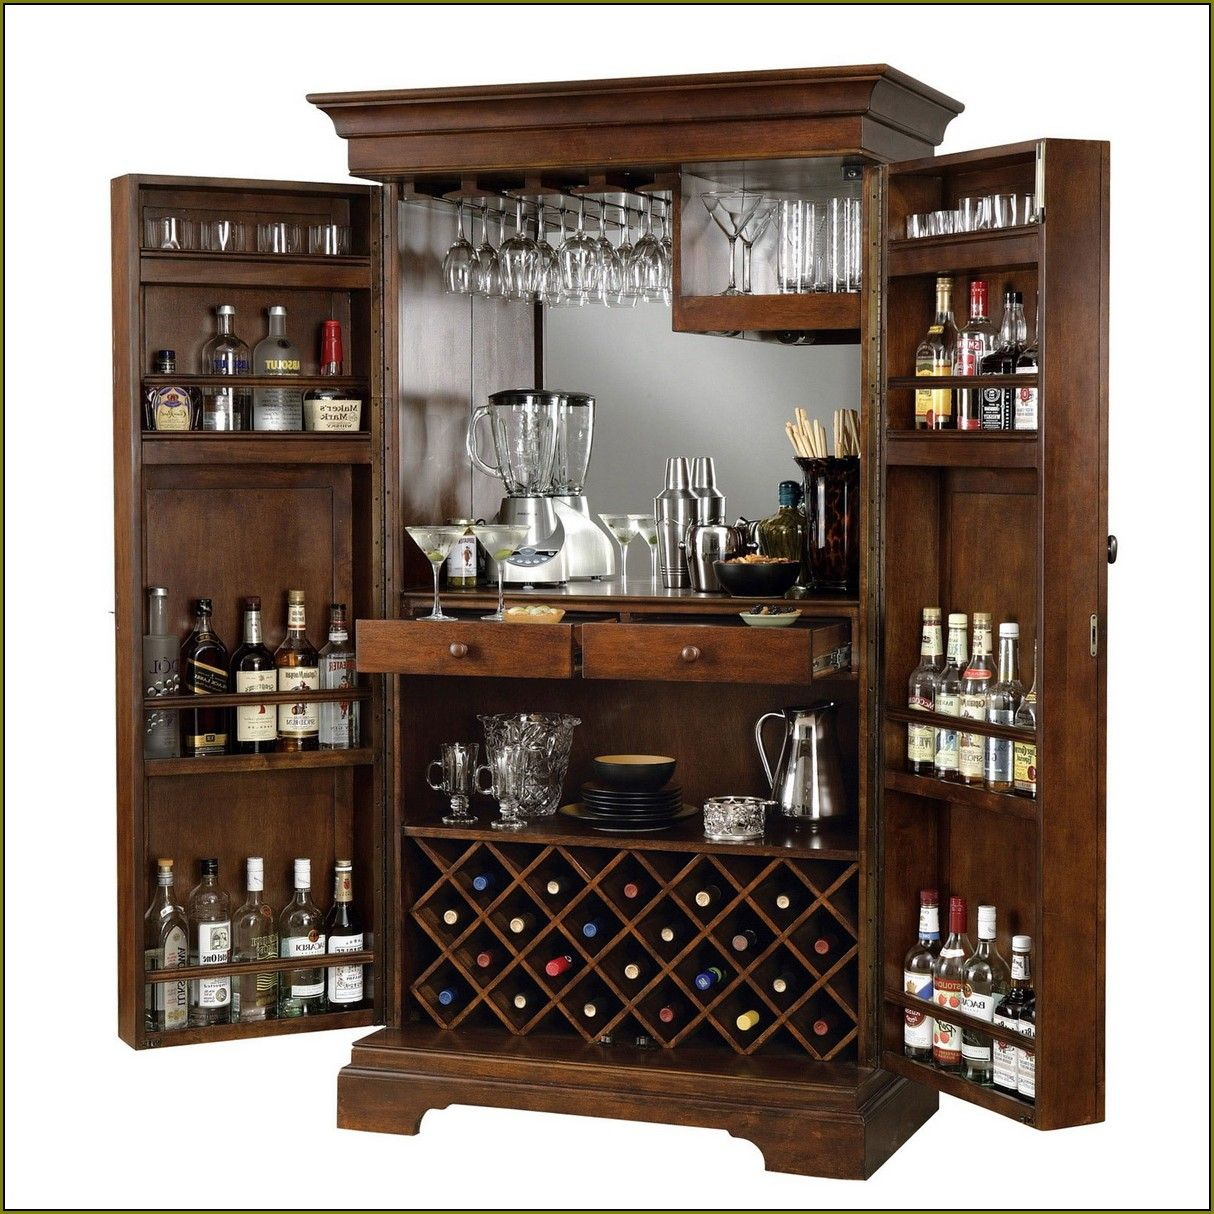 Merveilleux Elegant Liquor Cabinet Ikea For Home Furniture Ideas: Wonderful Wooden Liquor  Cabinet Ikea Plus Shelves